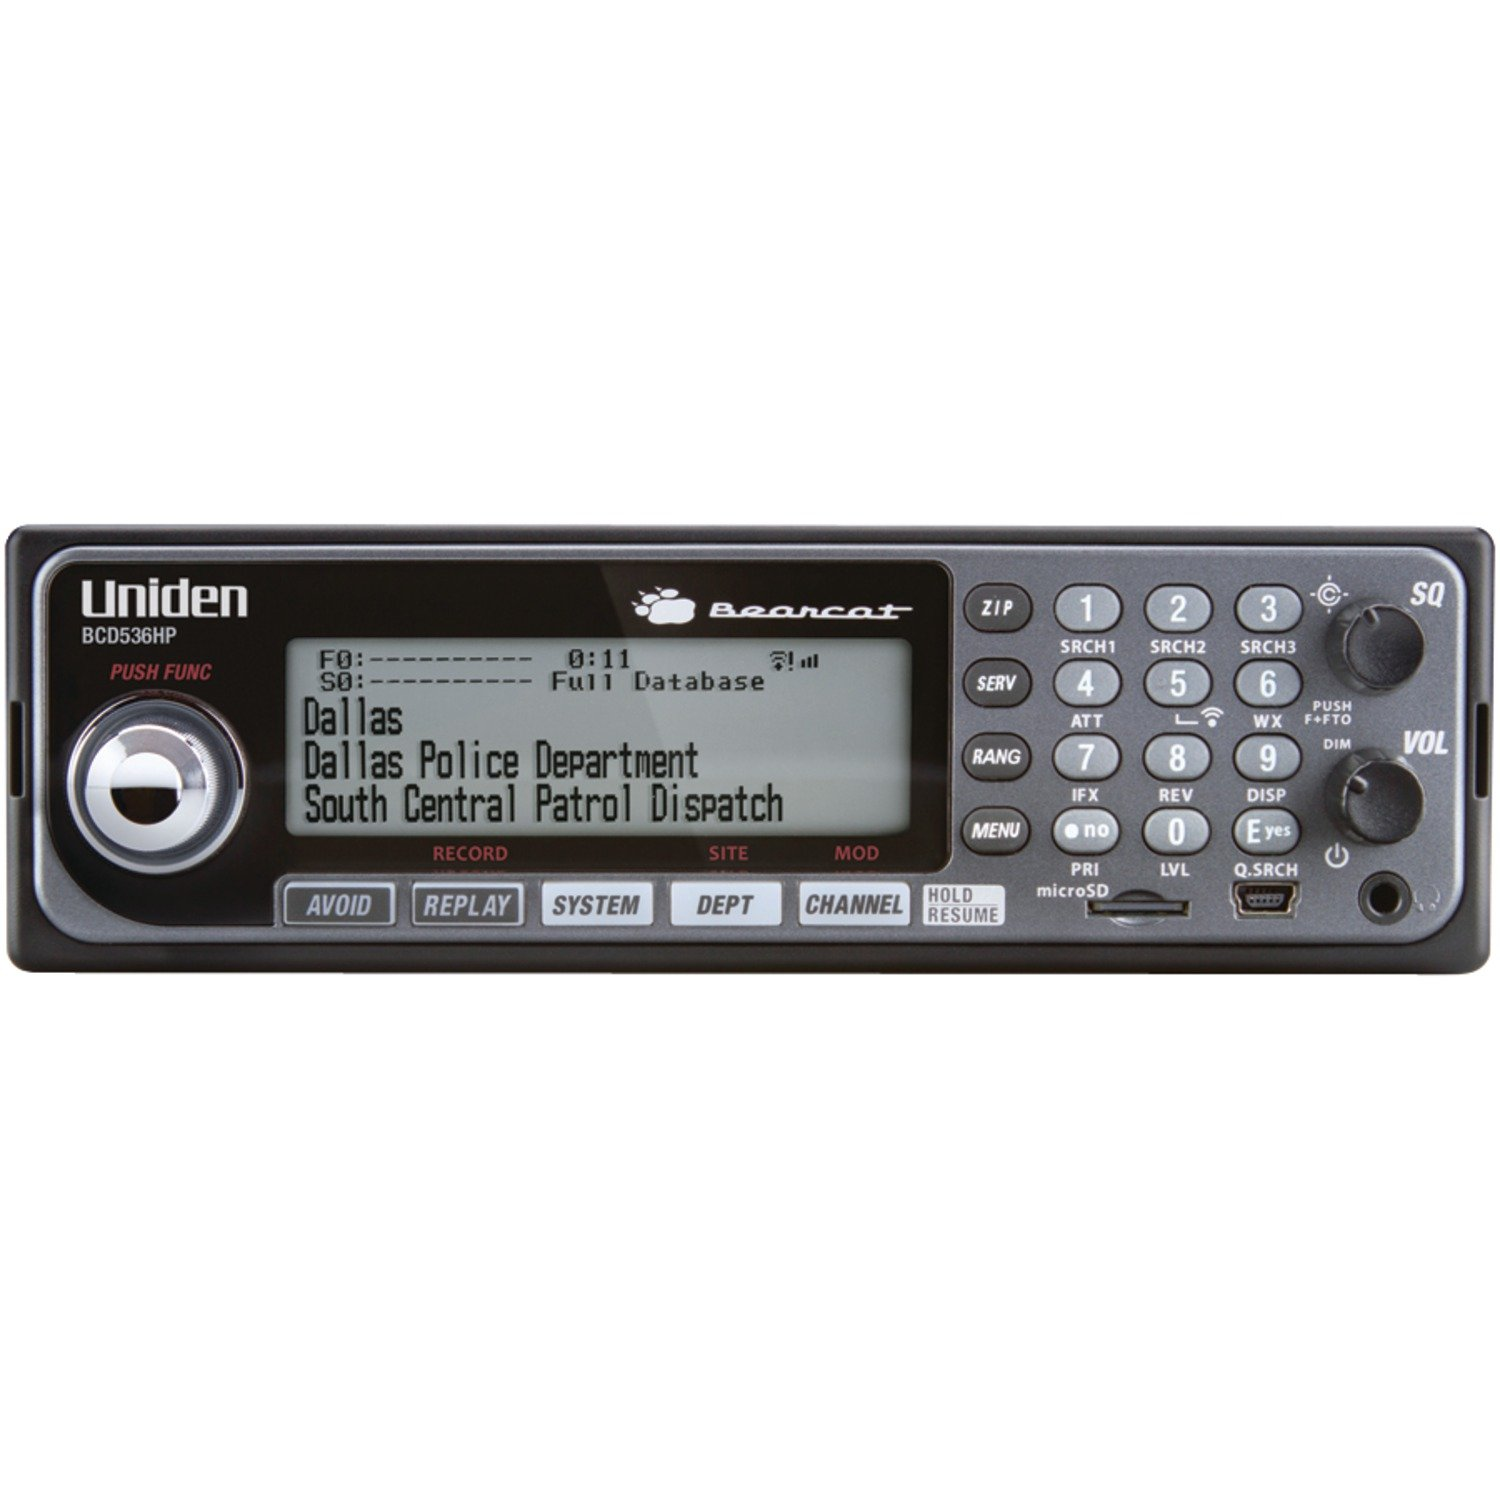 Uniden BCD536HP Digital Phase 2 Base/Mobile Scanner with HPDB and Wi-Fi by Uniden (Image #1)